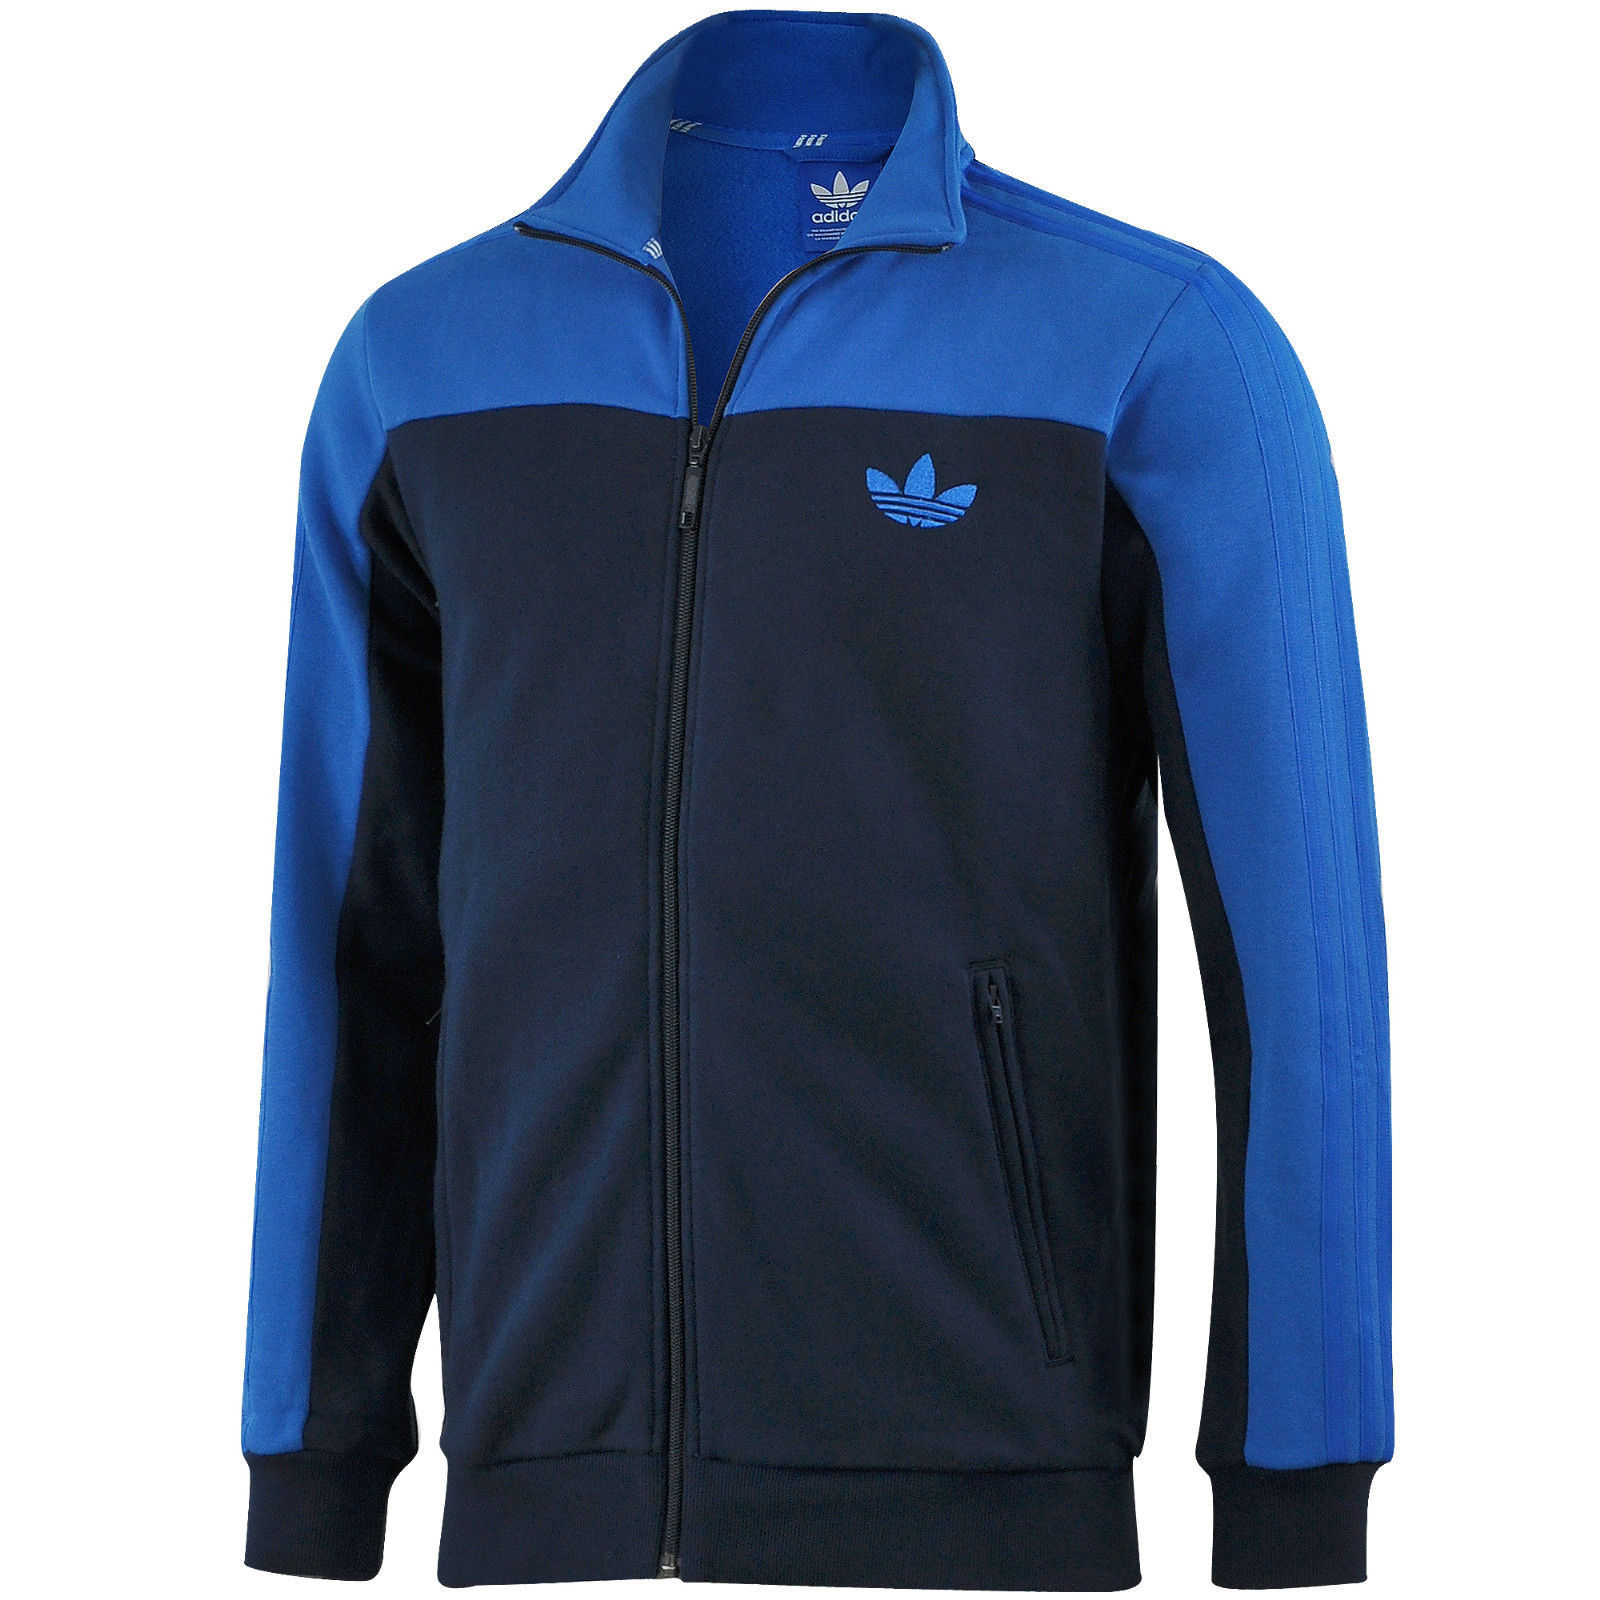 adidas firebird jacket 16 listings. Black Bedroom Furniture Sets. Home Design Ideas